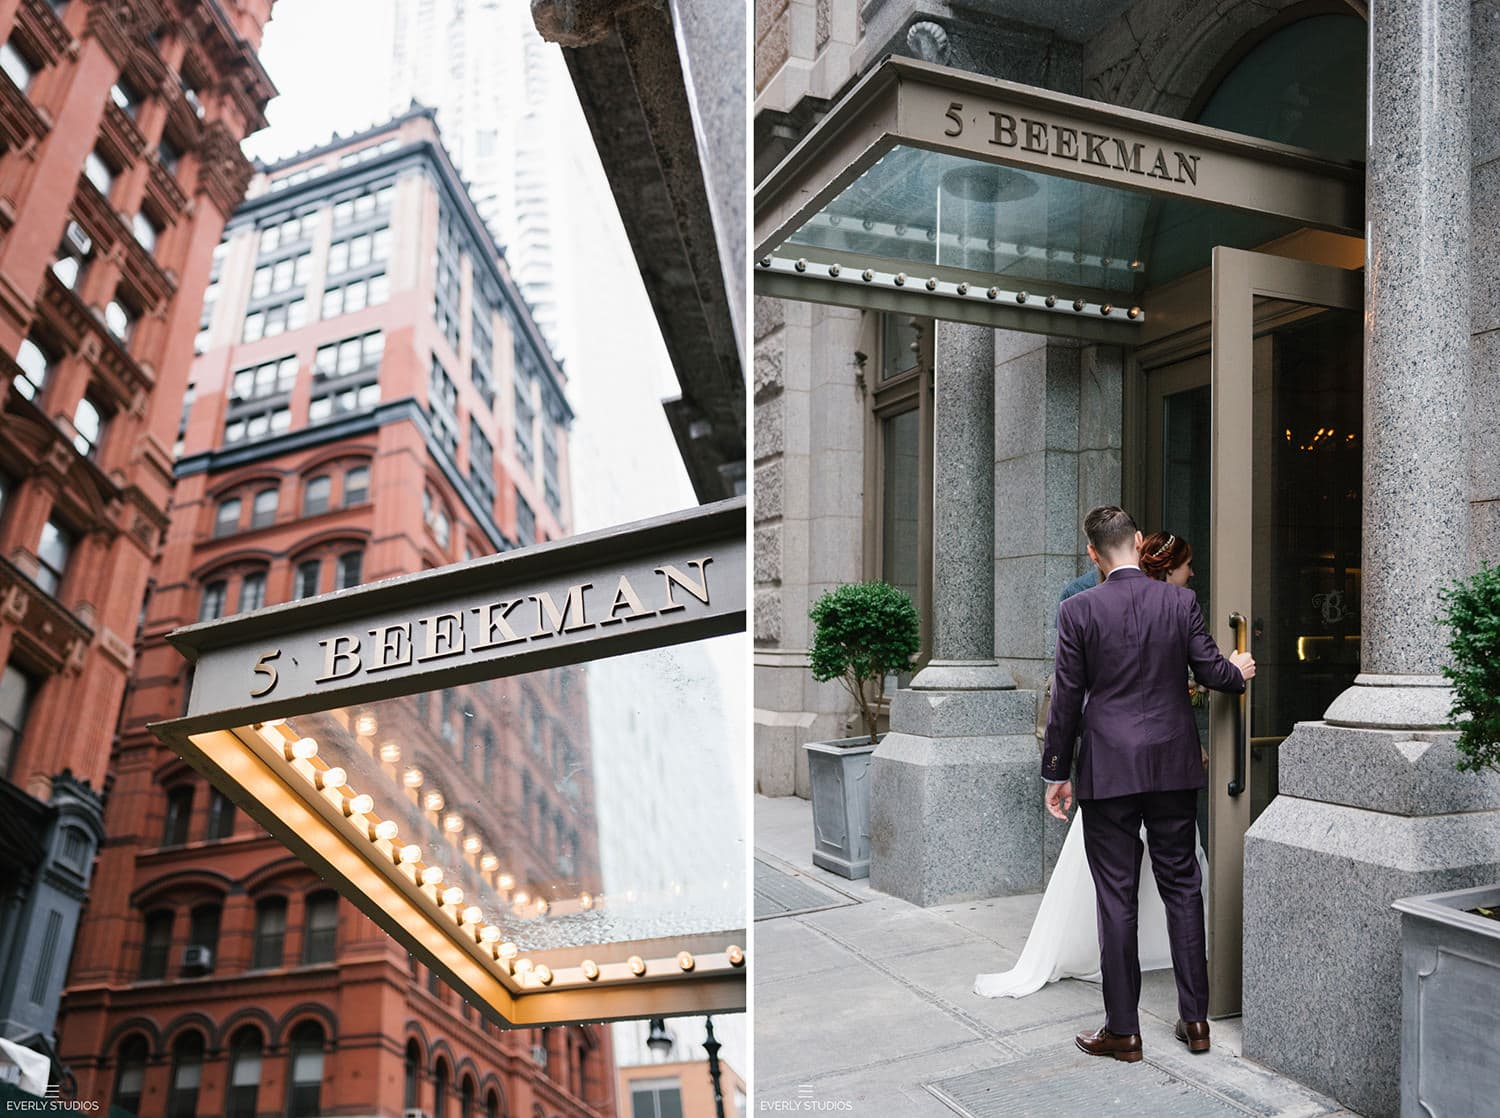 Beekman Hotel wedding photos, NYC. Photos by NYC elopement photographer Everly Studios, www.everlystudios.com